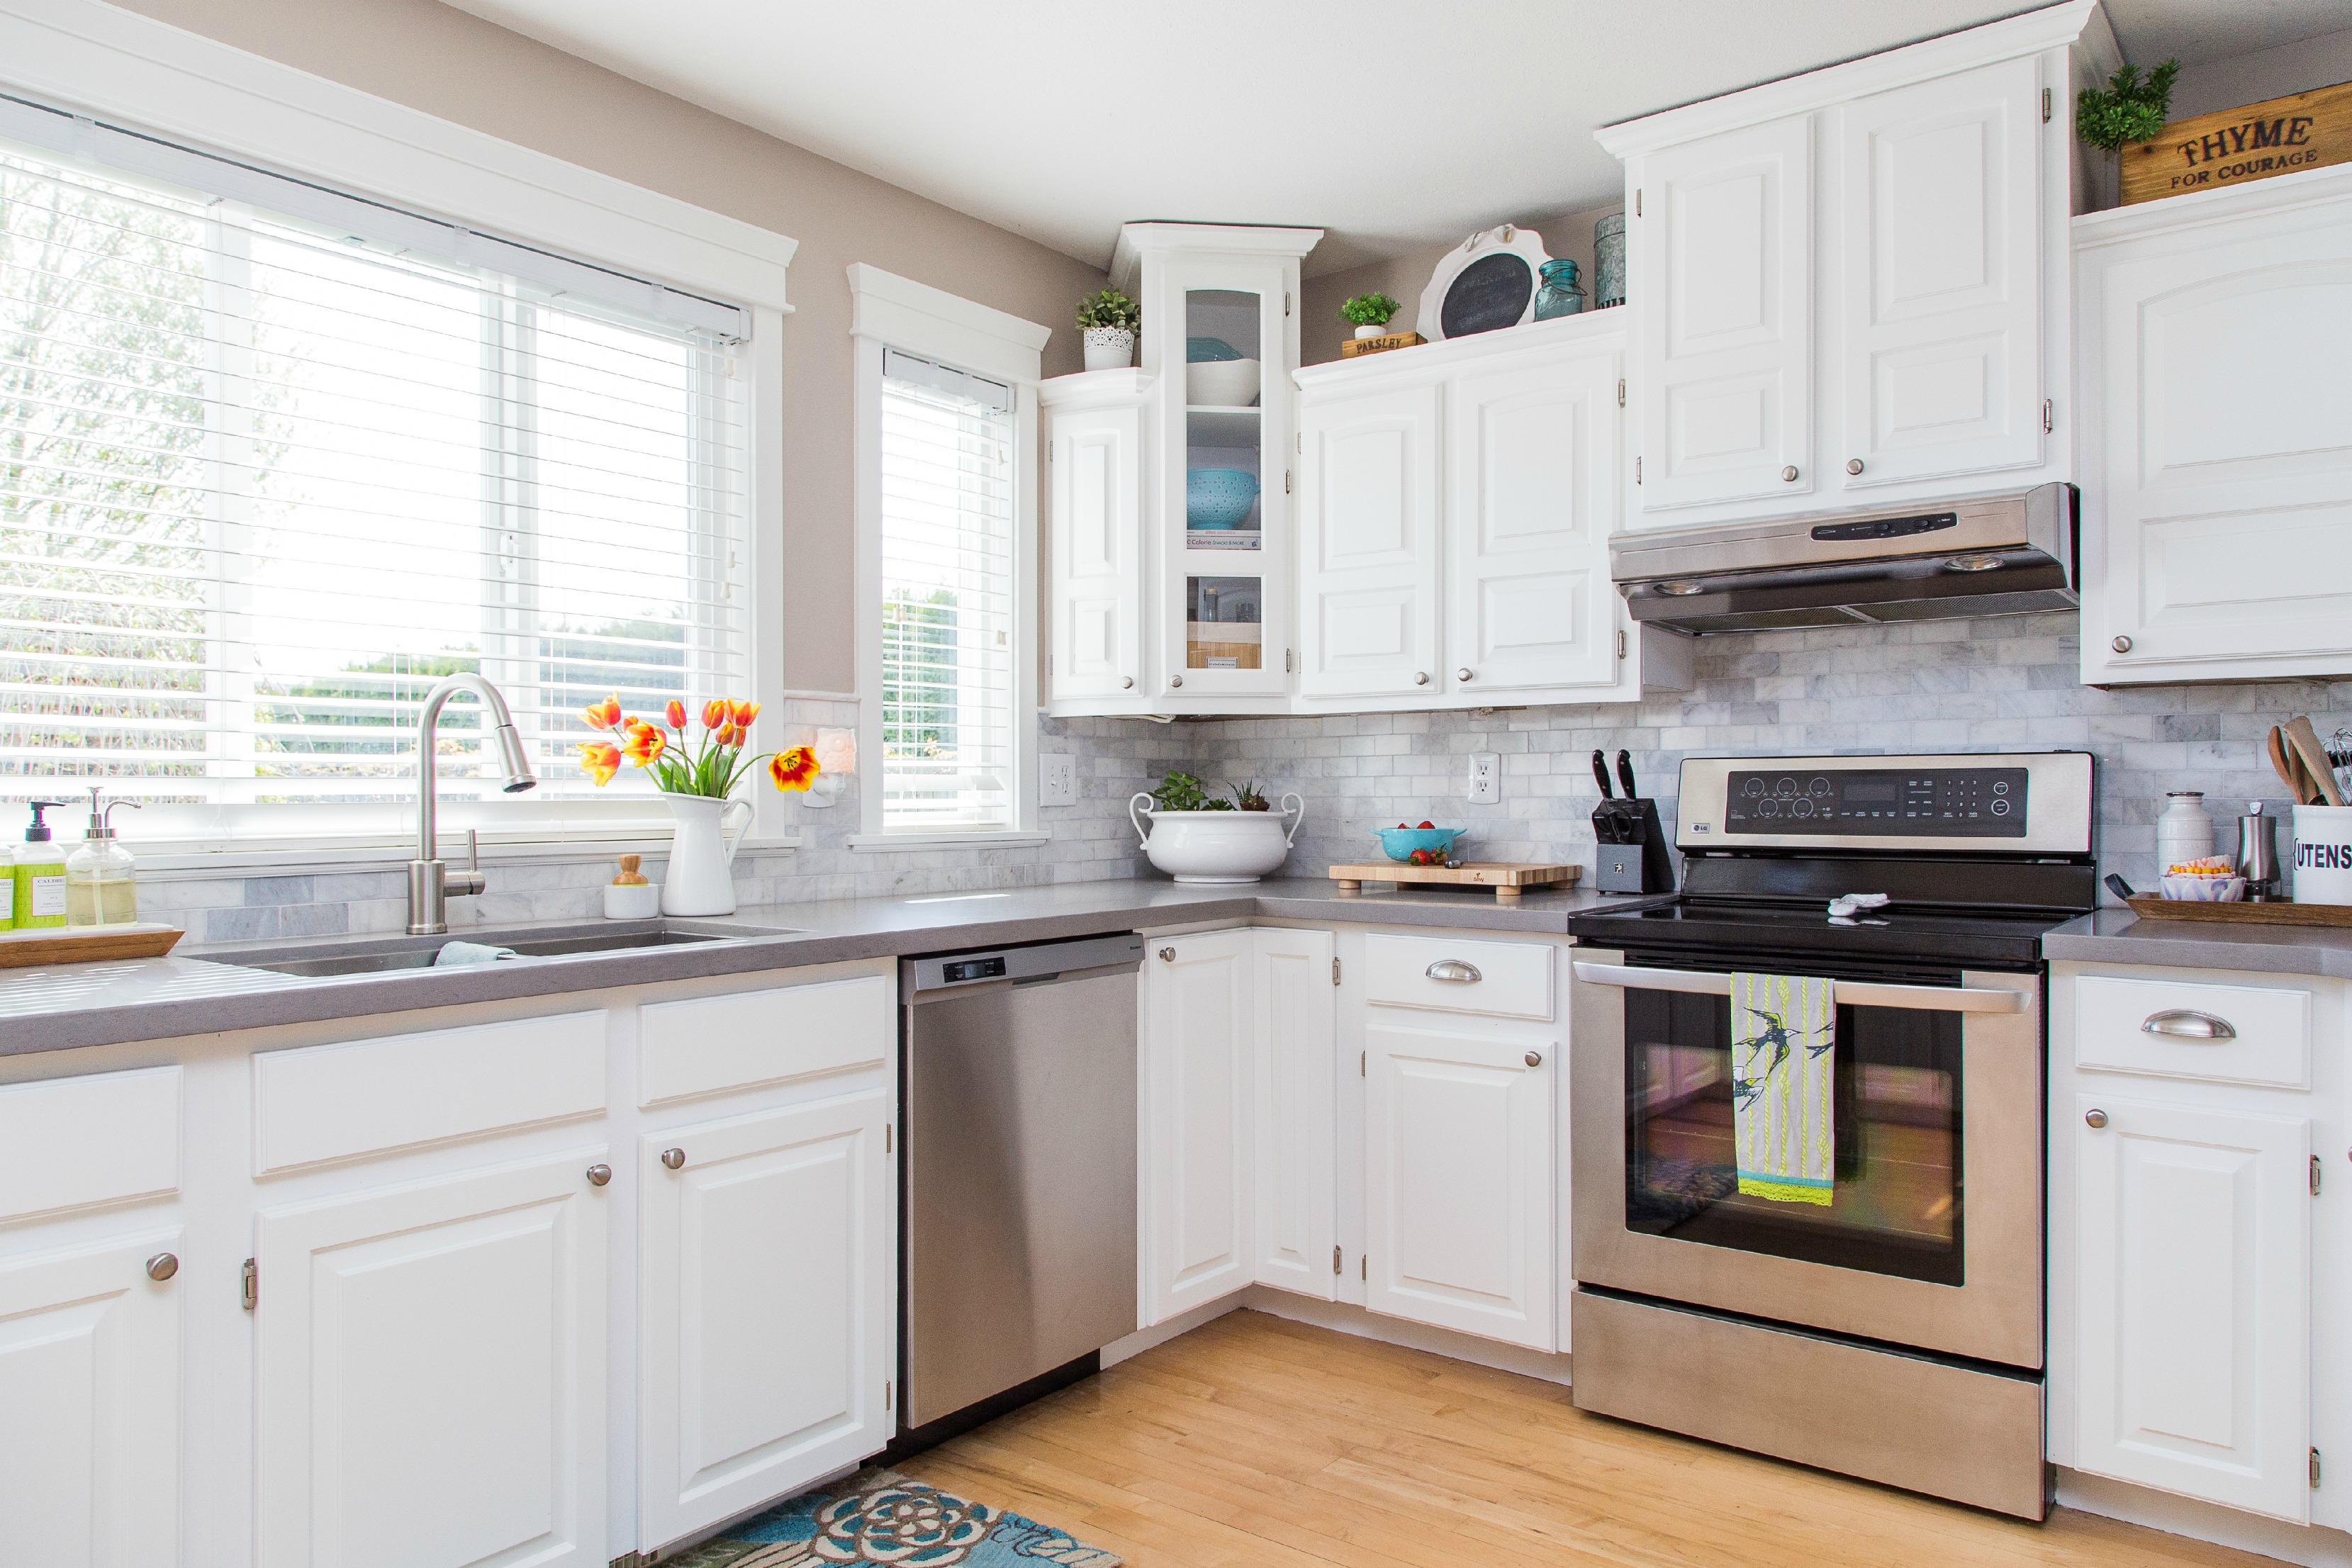 White Kitchen Cabinets: The Best Storage Option For Your Kitchen